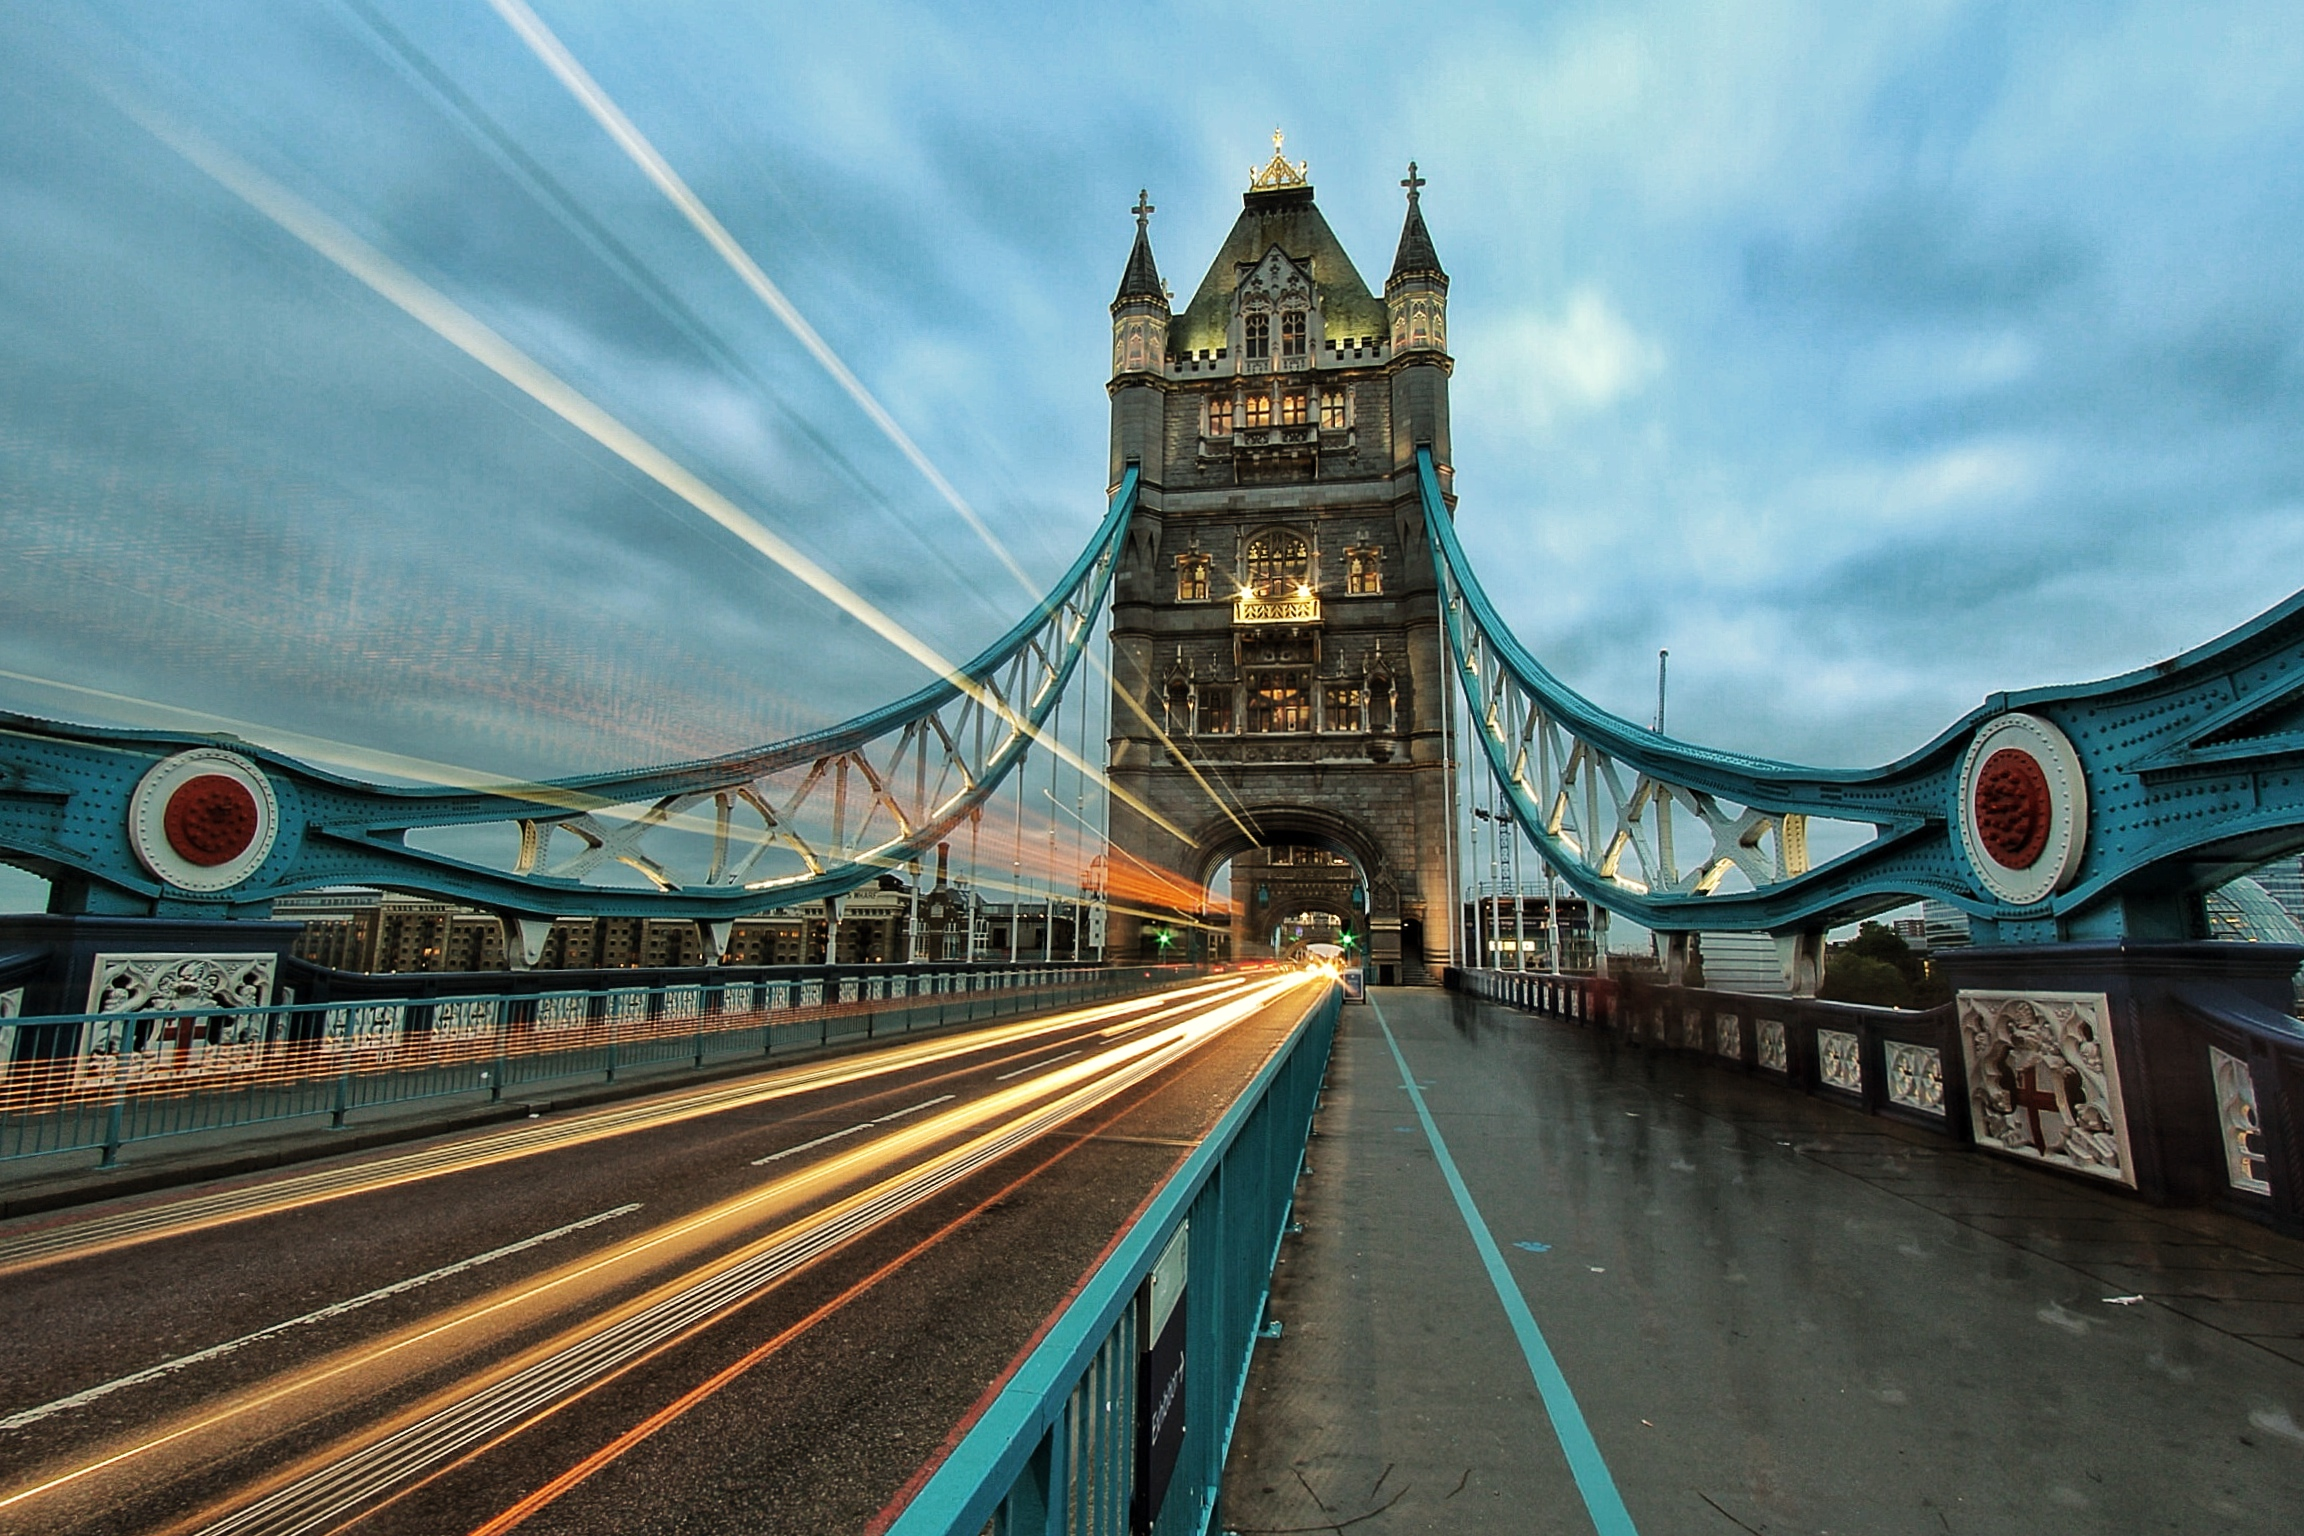 Motion blur from traffic passing through the arches of Tower Bridge, over the River Thames, London.